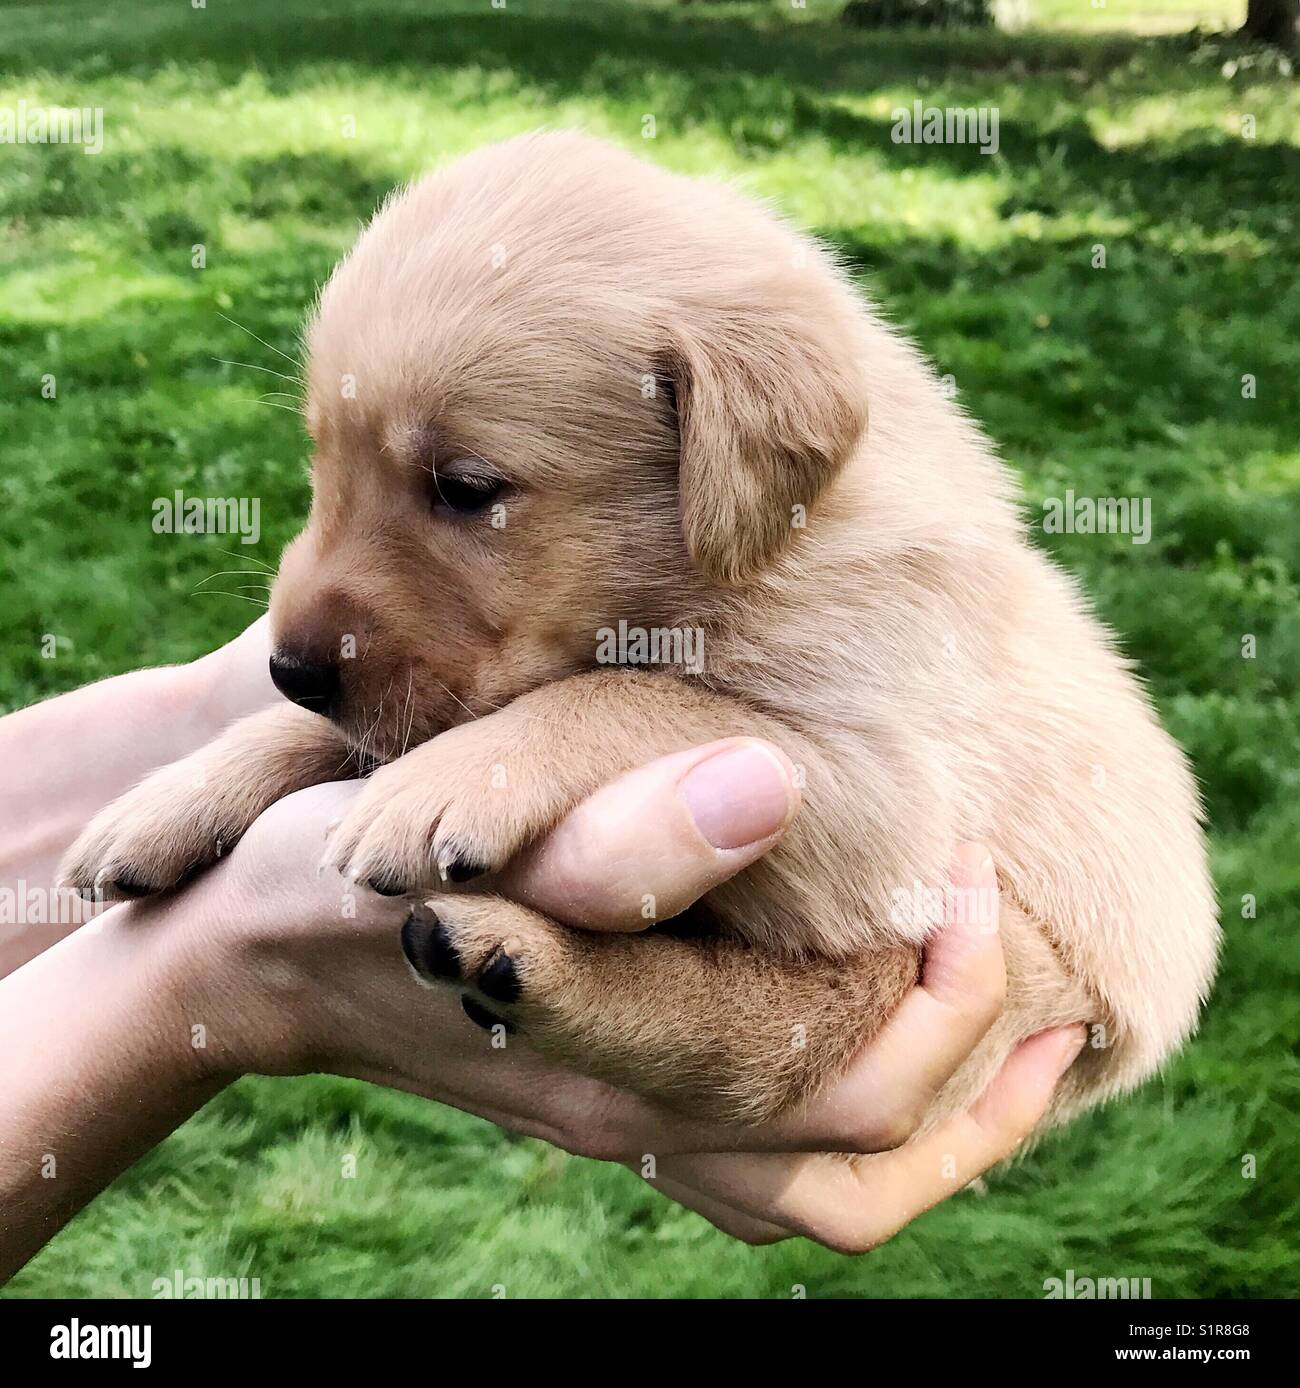 Hands Holding A Baby Golden Retriever Puppy Stock Photo Alamy